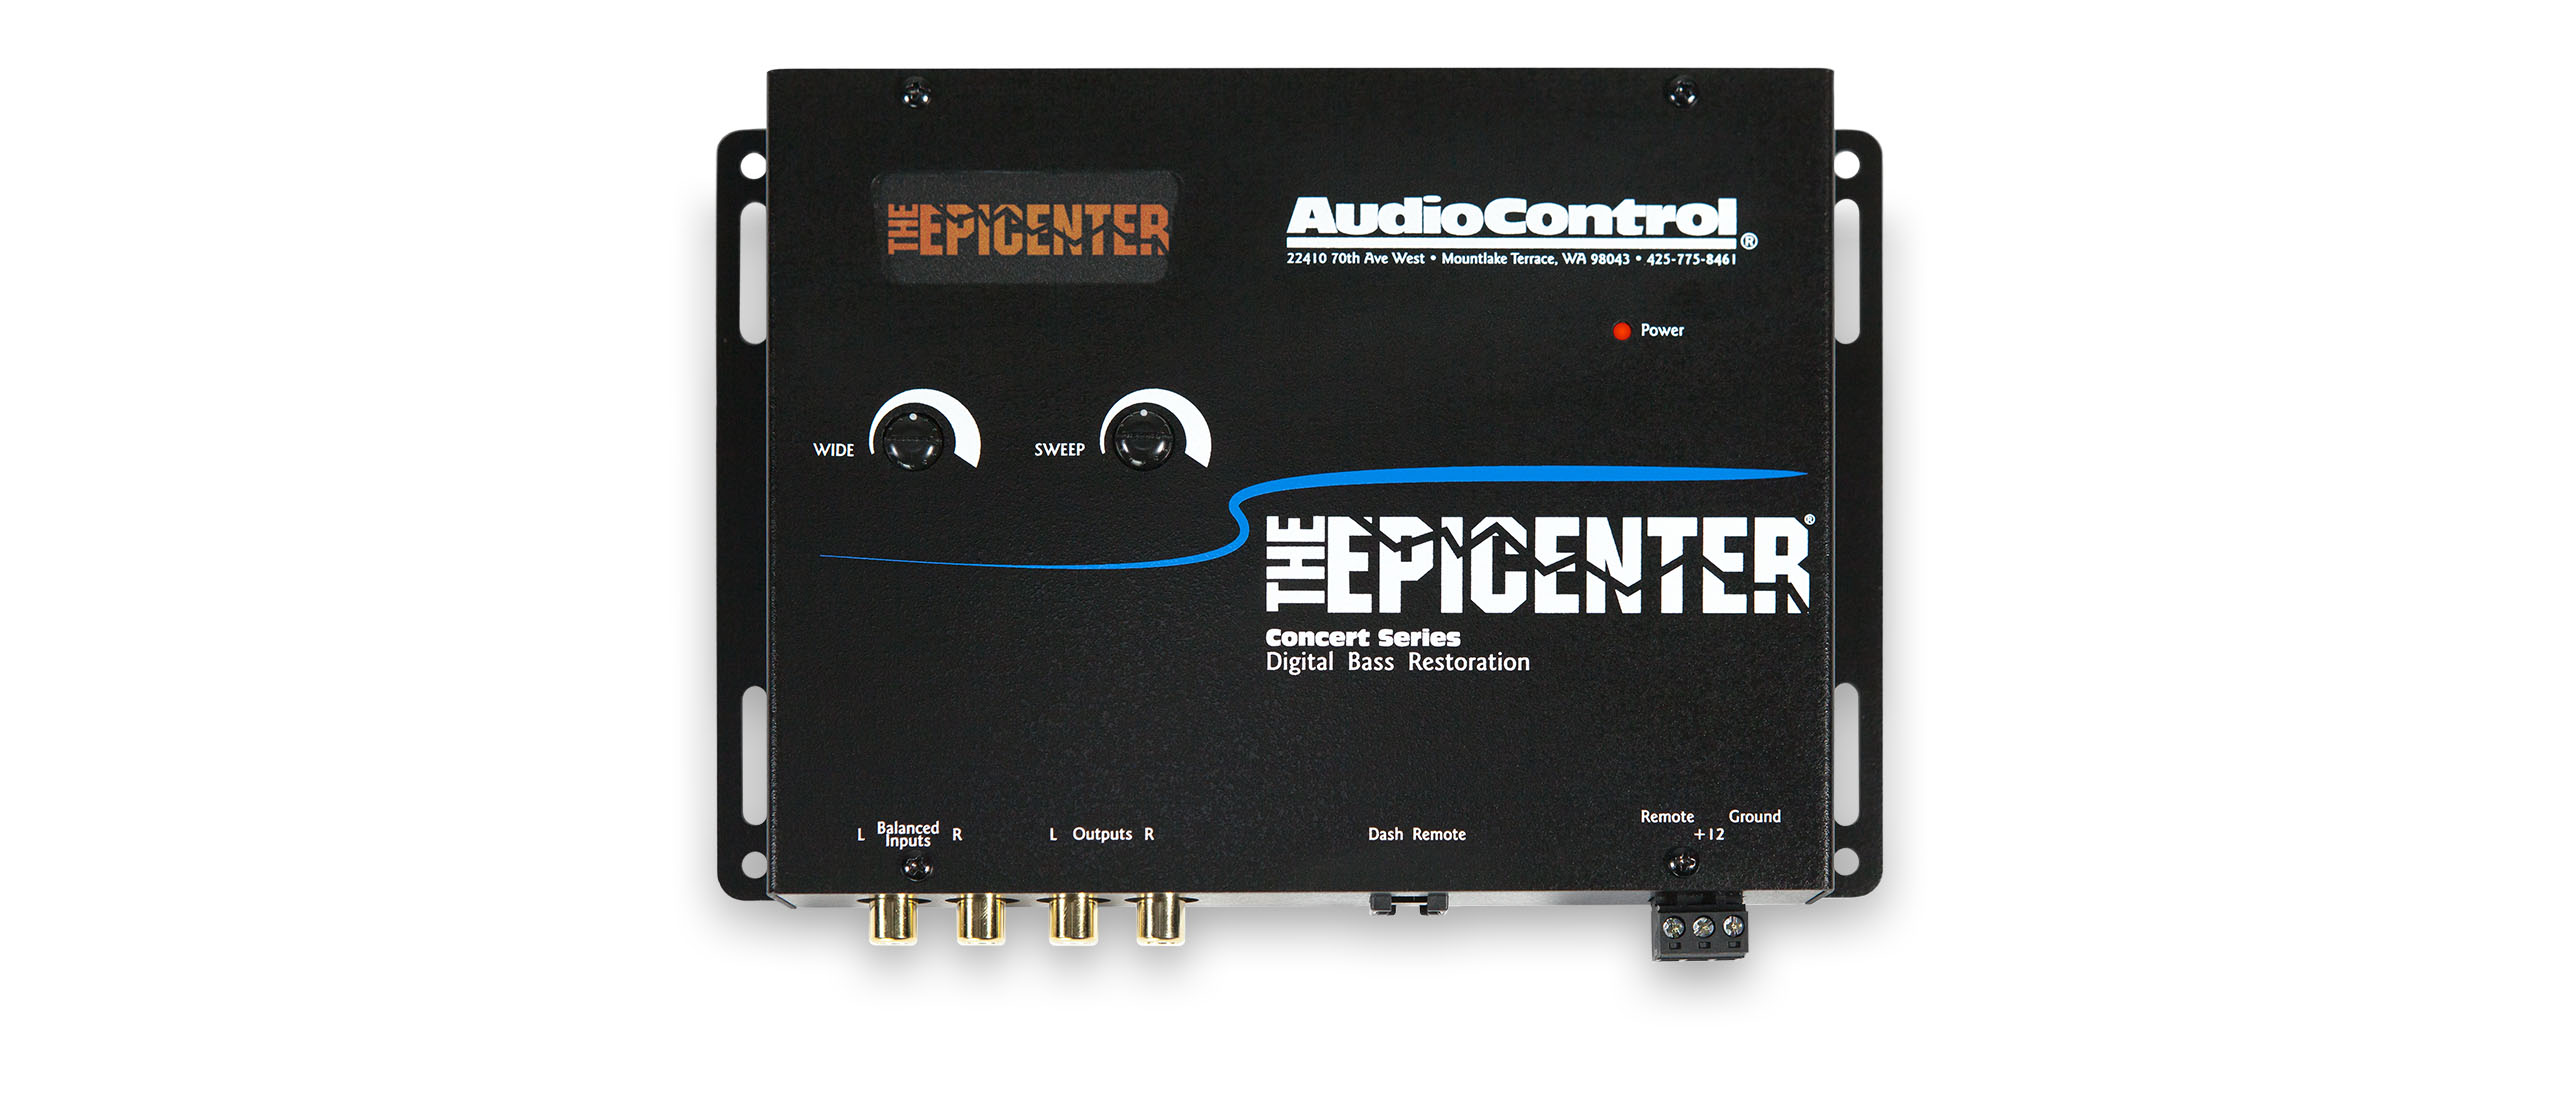 The Epicenter AudioControl